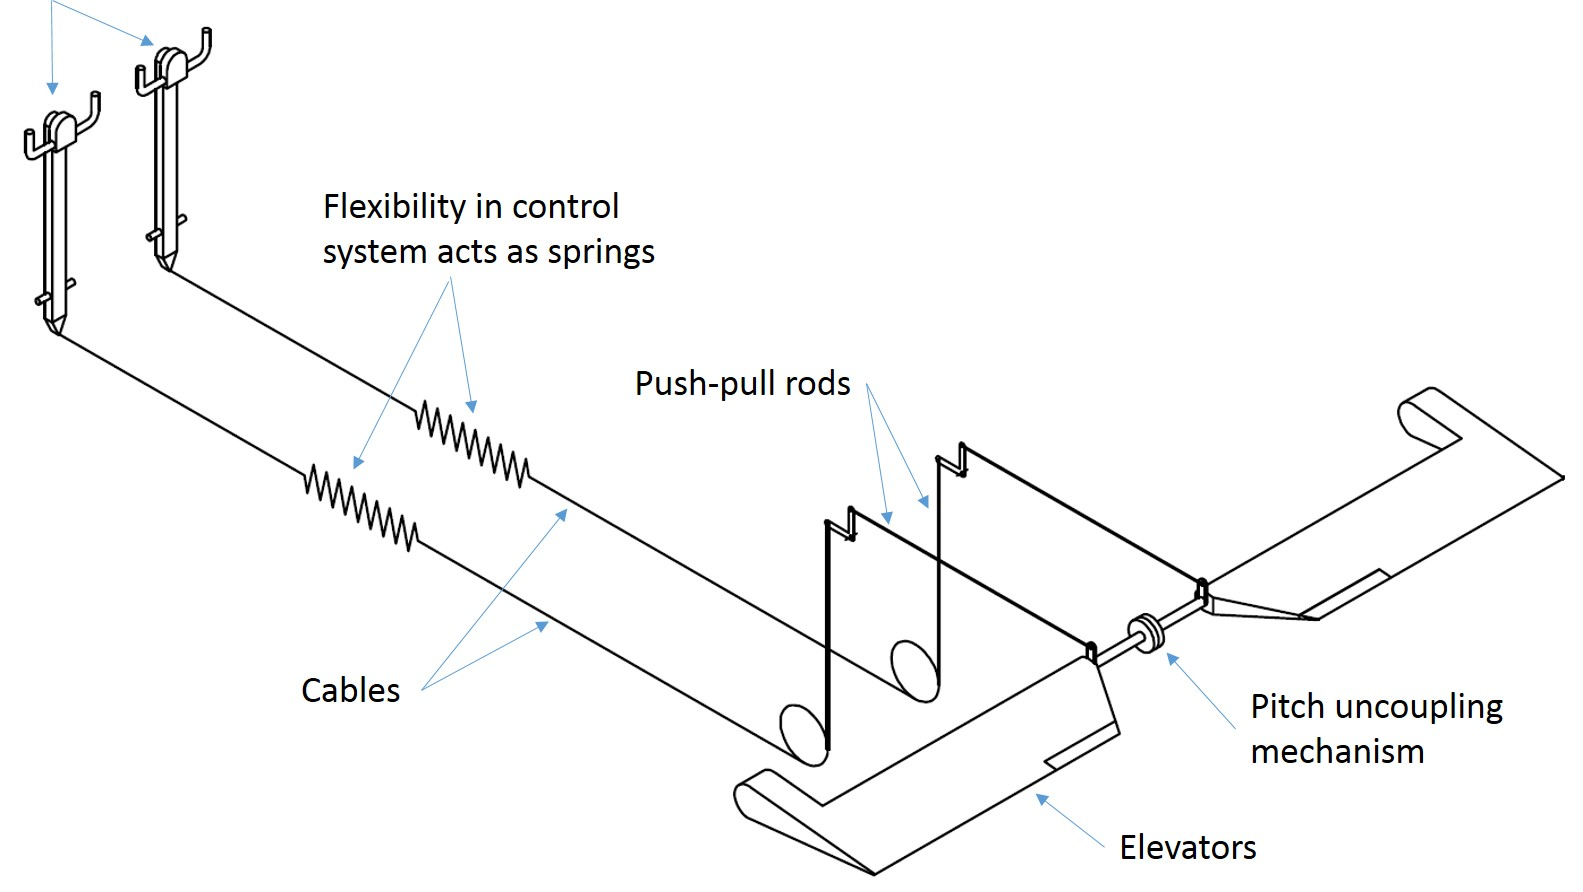 Figure 4: Simplified model of the pitch control system with the flexibility in each channel being represented as a spring in the control cables